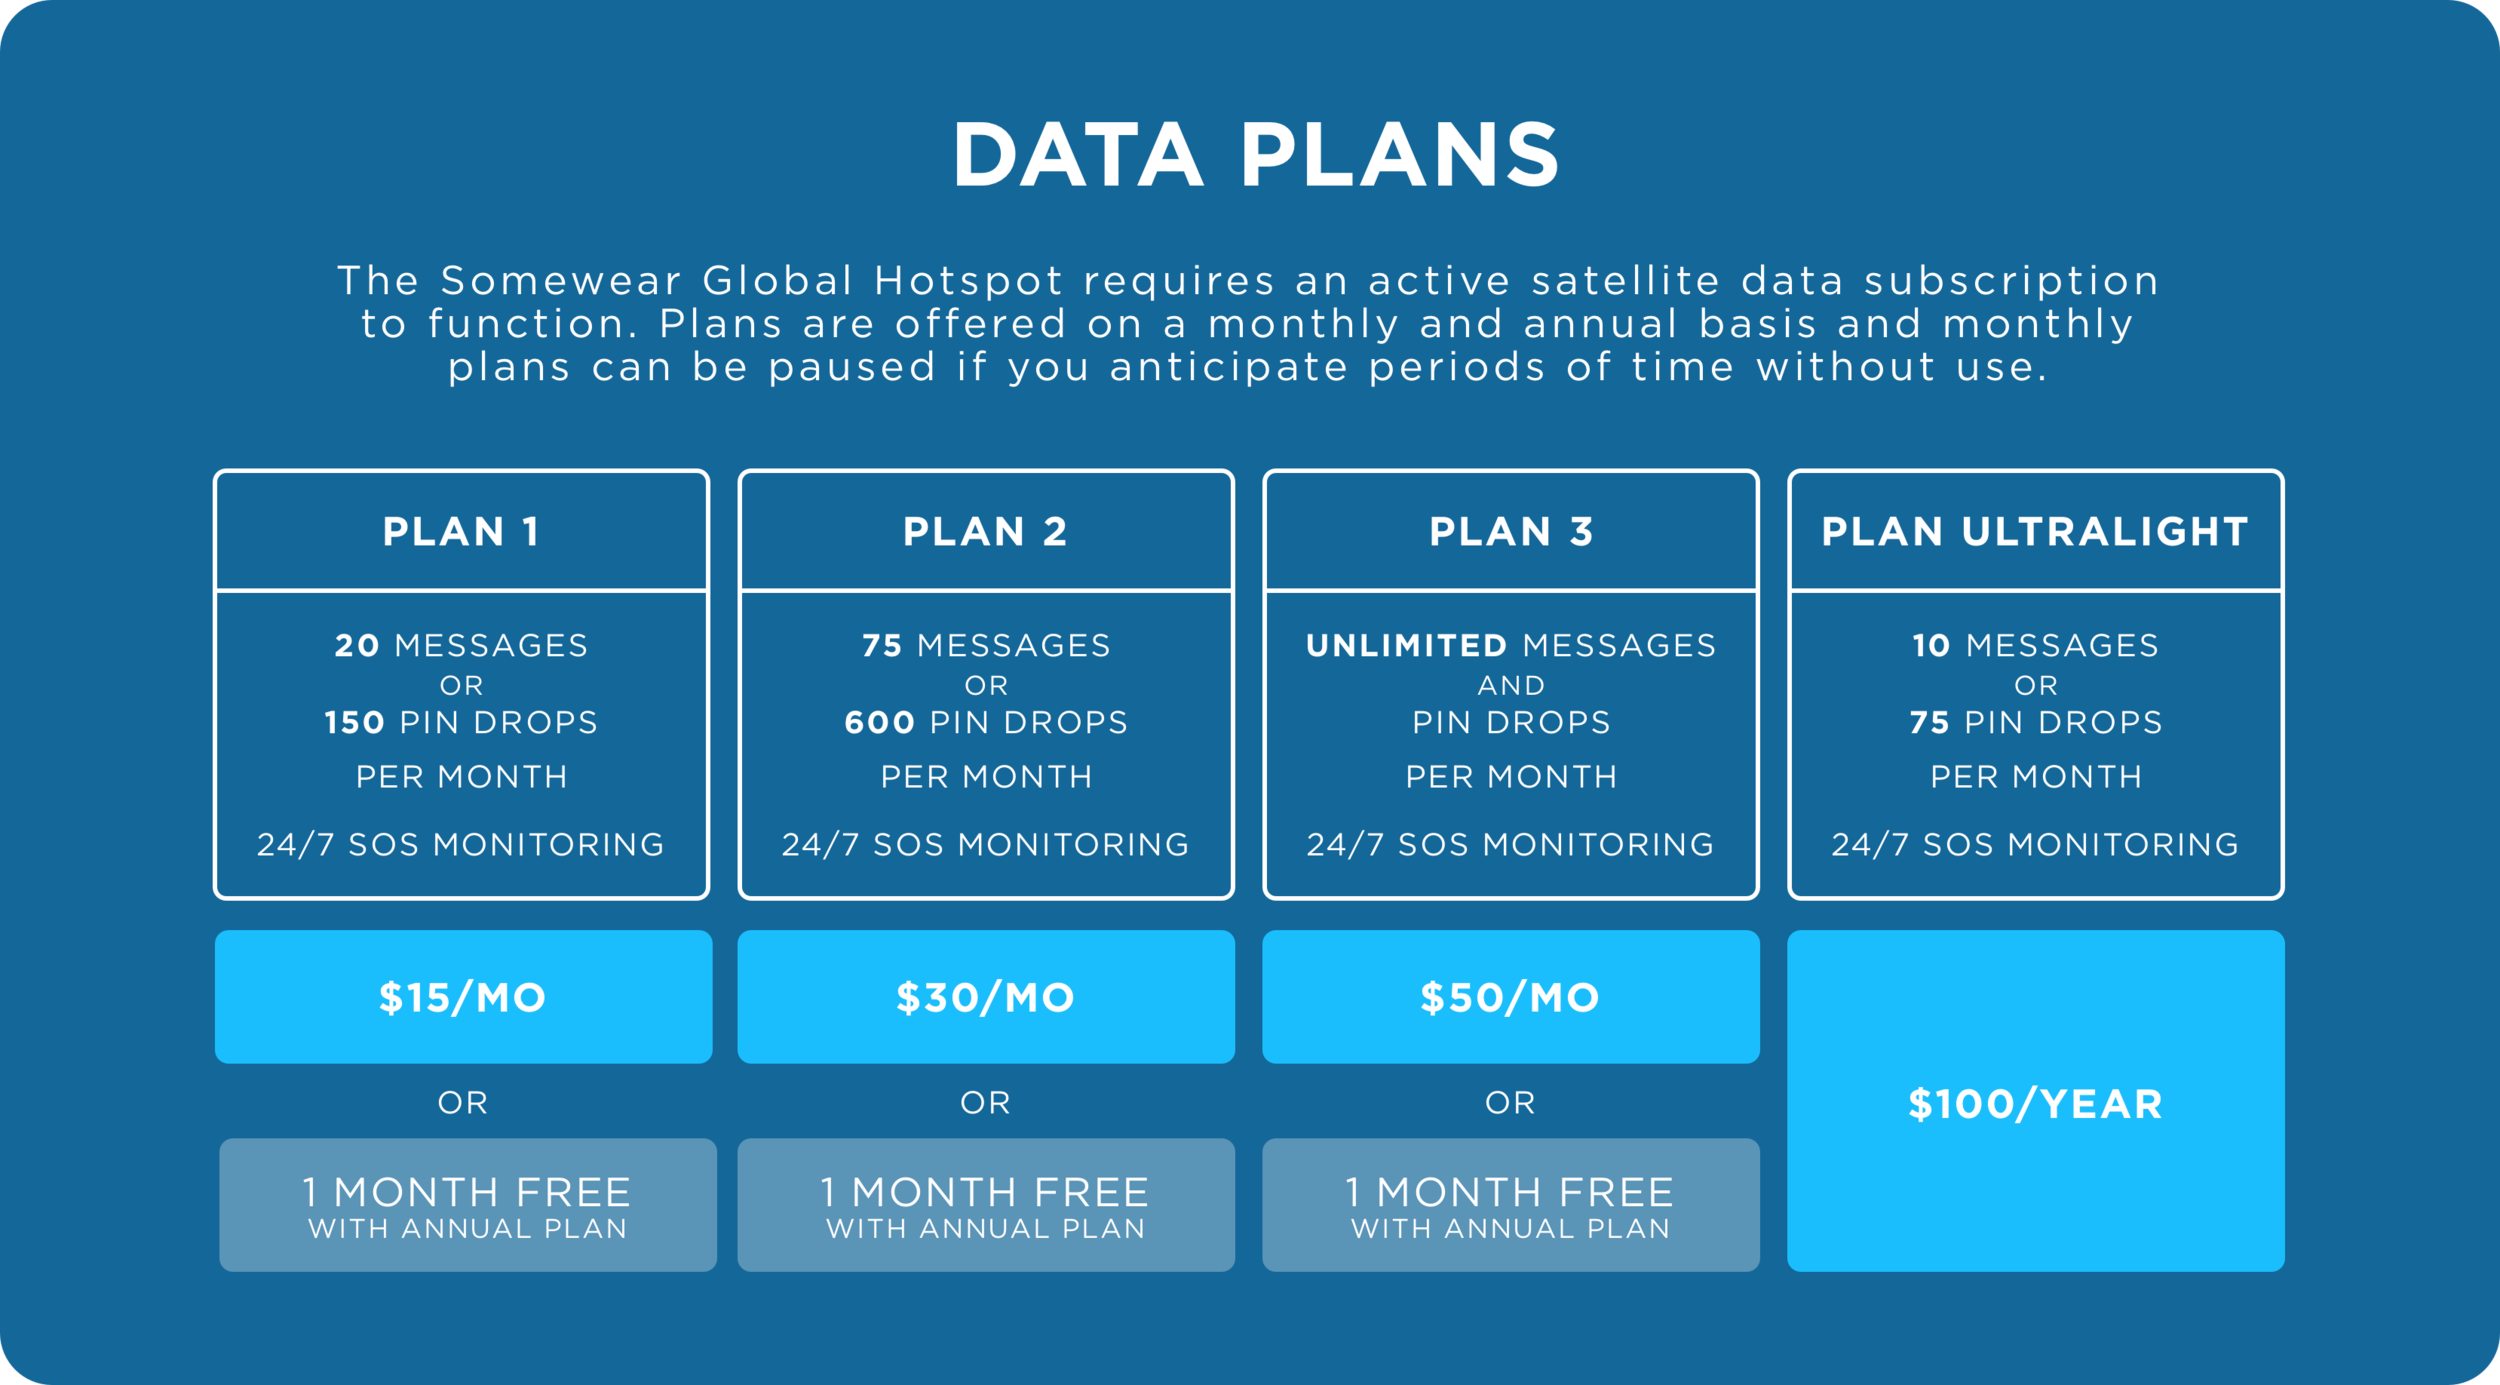 data-plans_031919.png